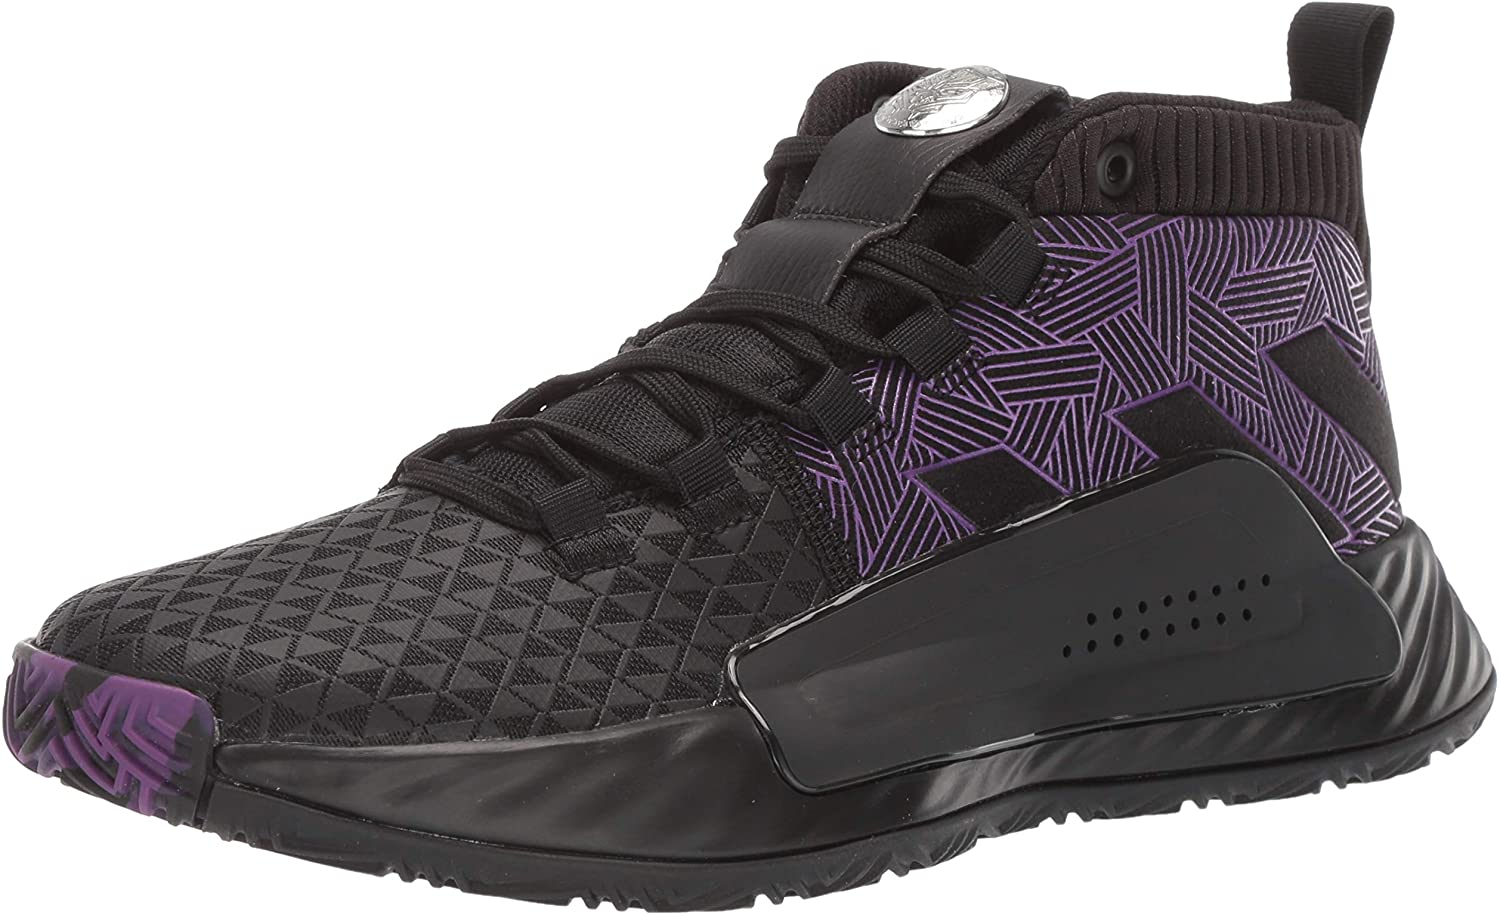 Adidas Womens Dame 5 Baseball shoes